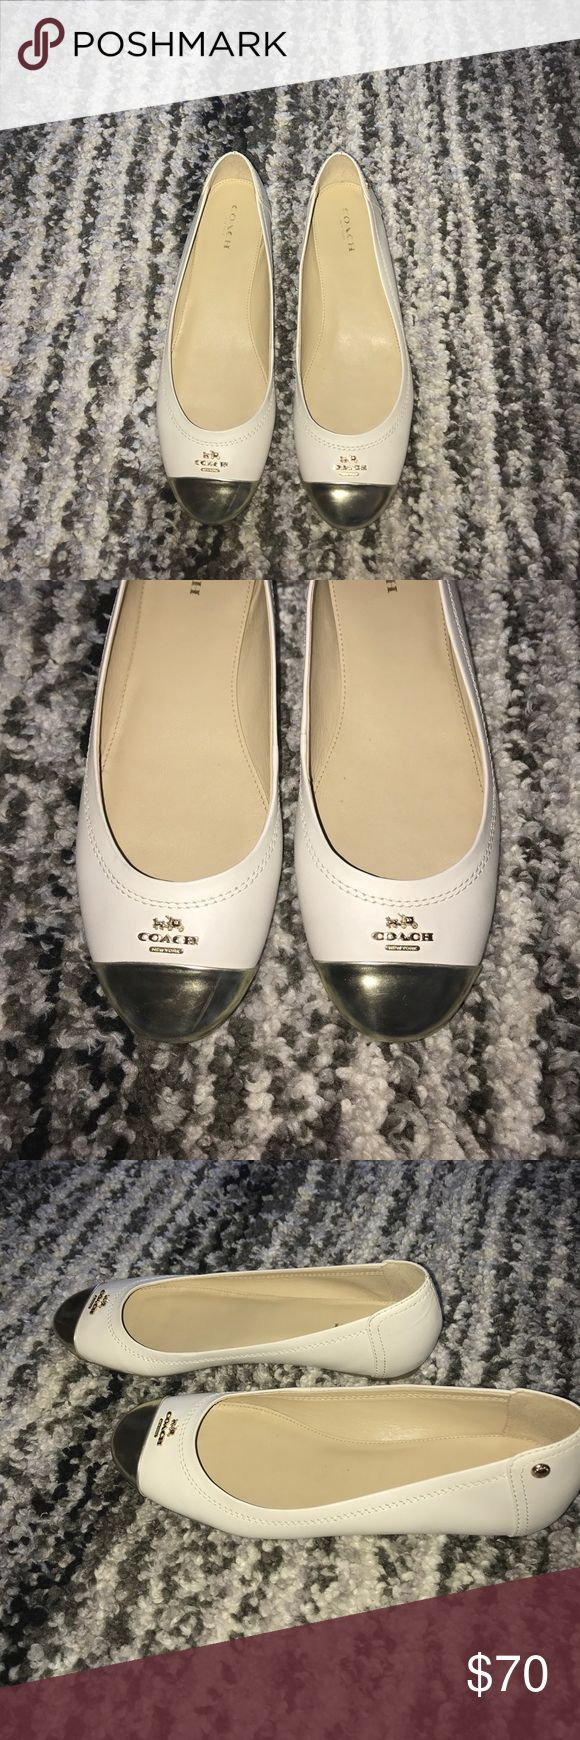 💜💜 OFFERS!! - Coach flats!! White and gold authentic Coach flats in great condition!! Coach Shoes Flats & Loafers